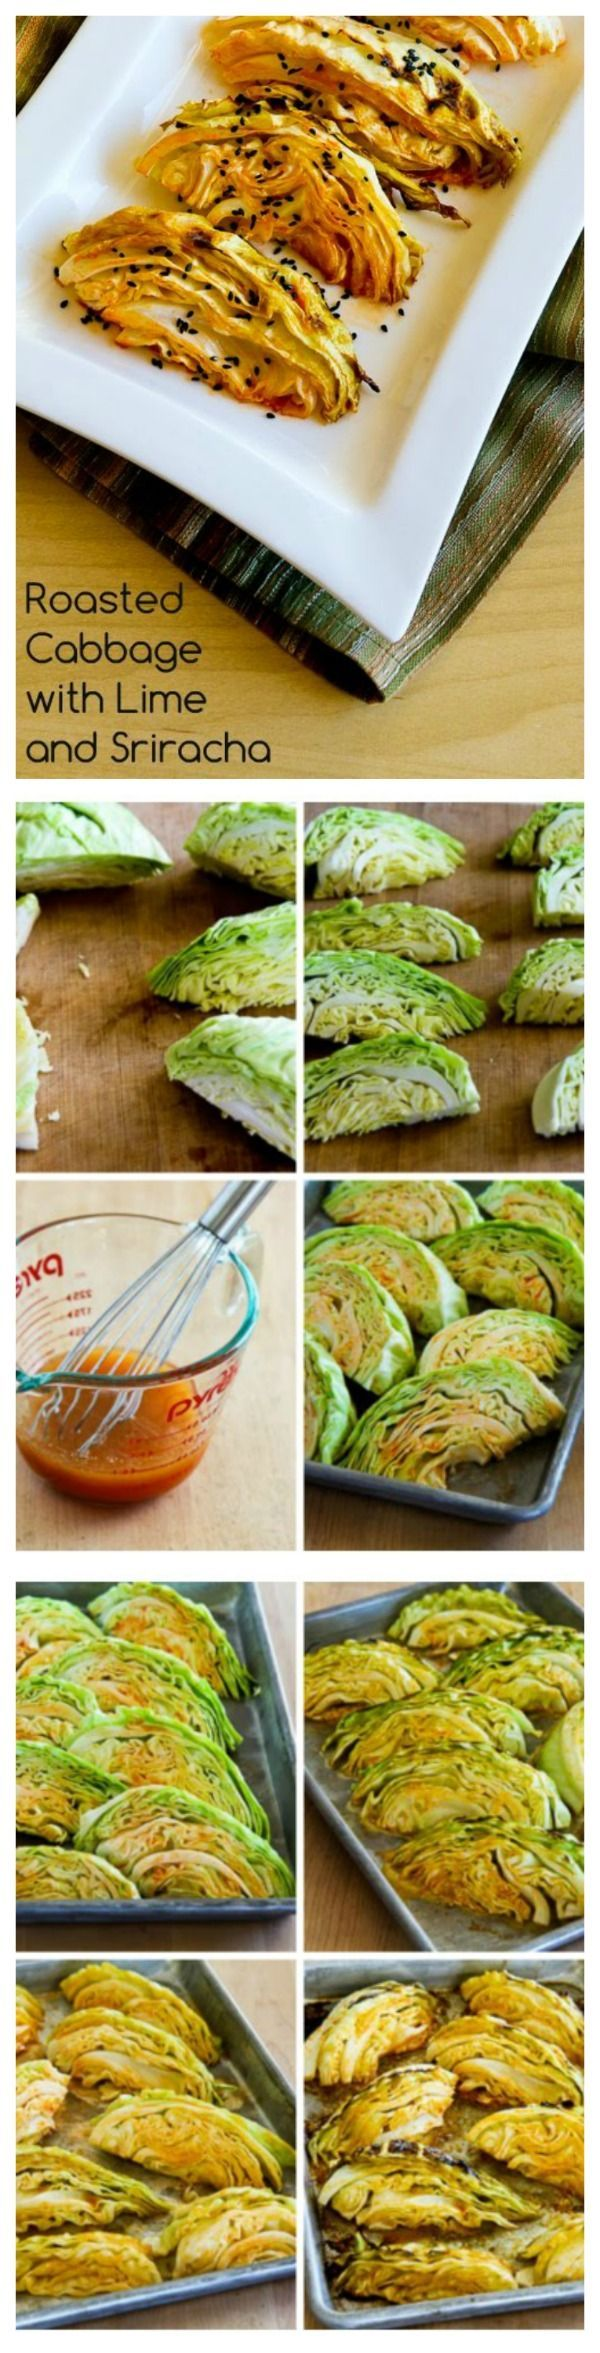 This Roasted Cabbage with Lime and Sriracha has just a bit of tangy spiciness from the lime juice and Sriracha. [from KalynsKitchen.com]